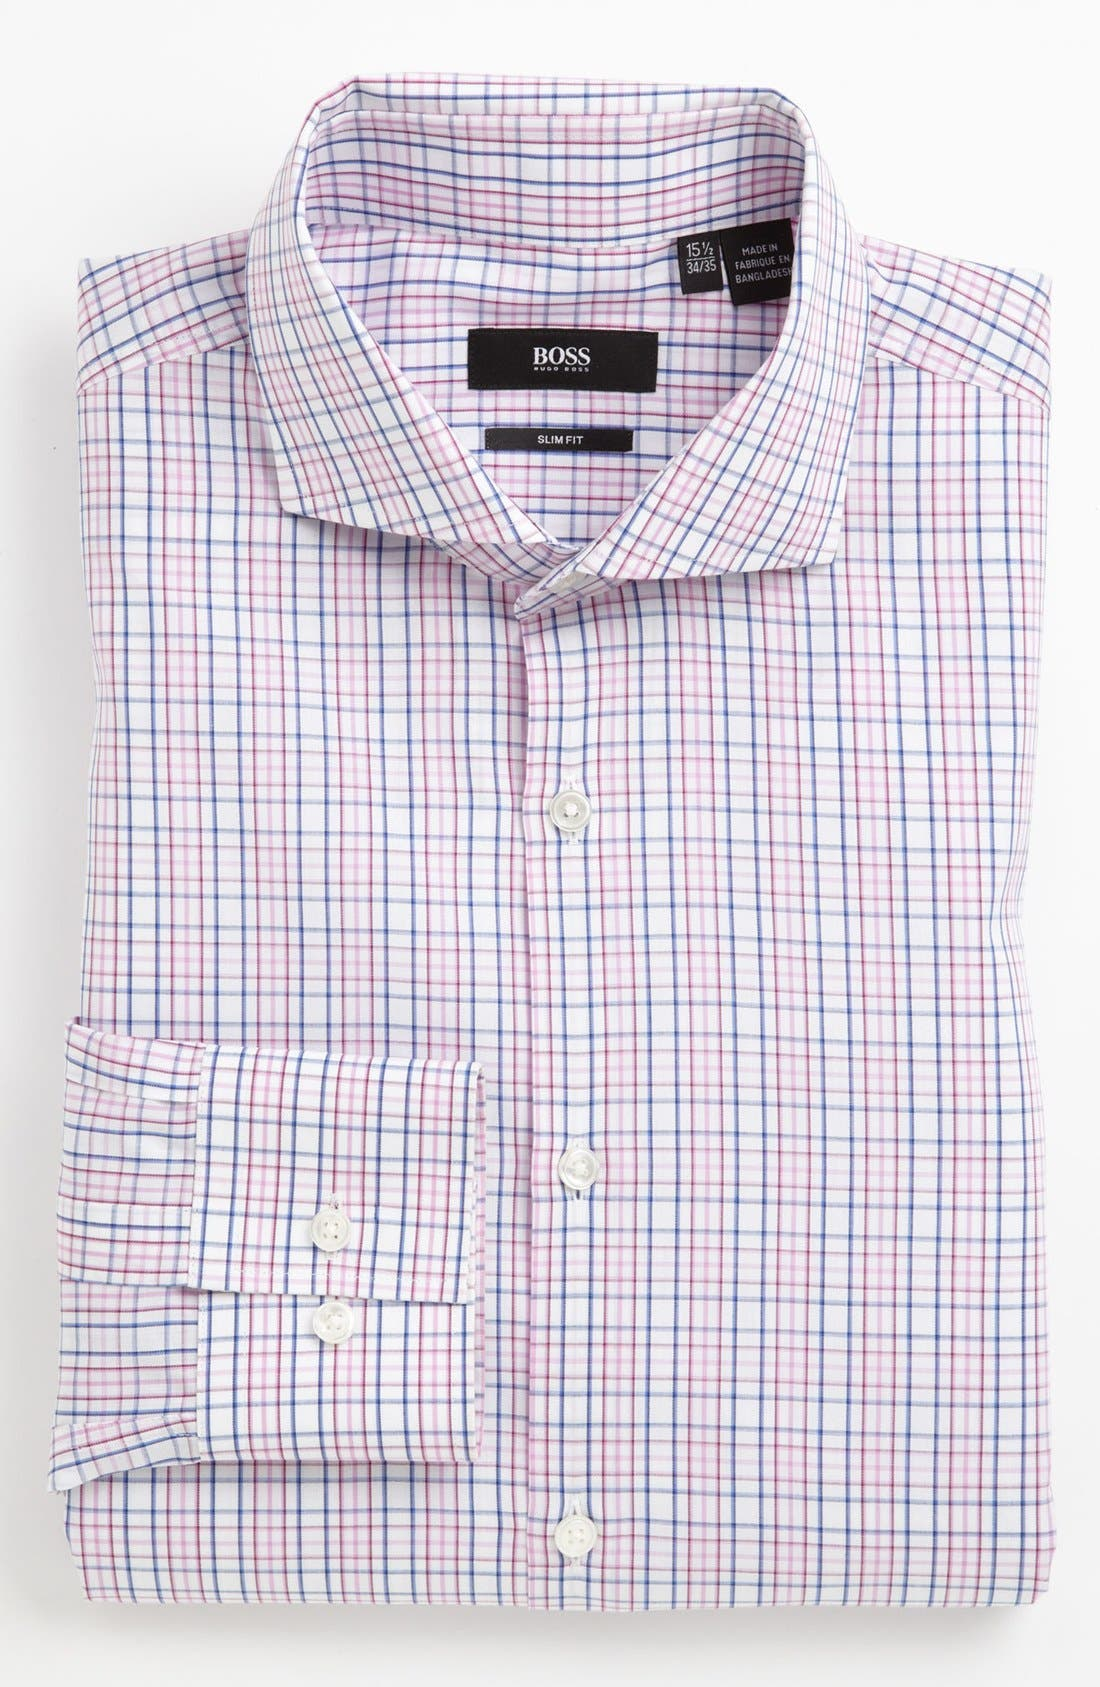 Alternate Image 1 Selected - BOSS HUGO BOSS Slim Fit Dress Shirt